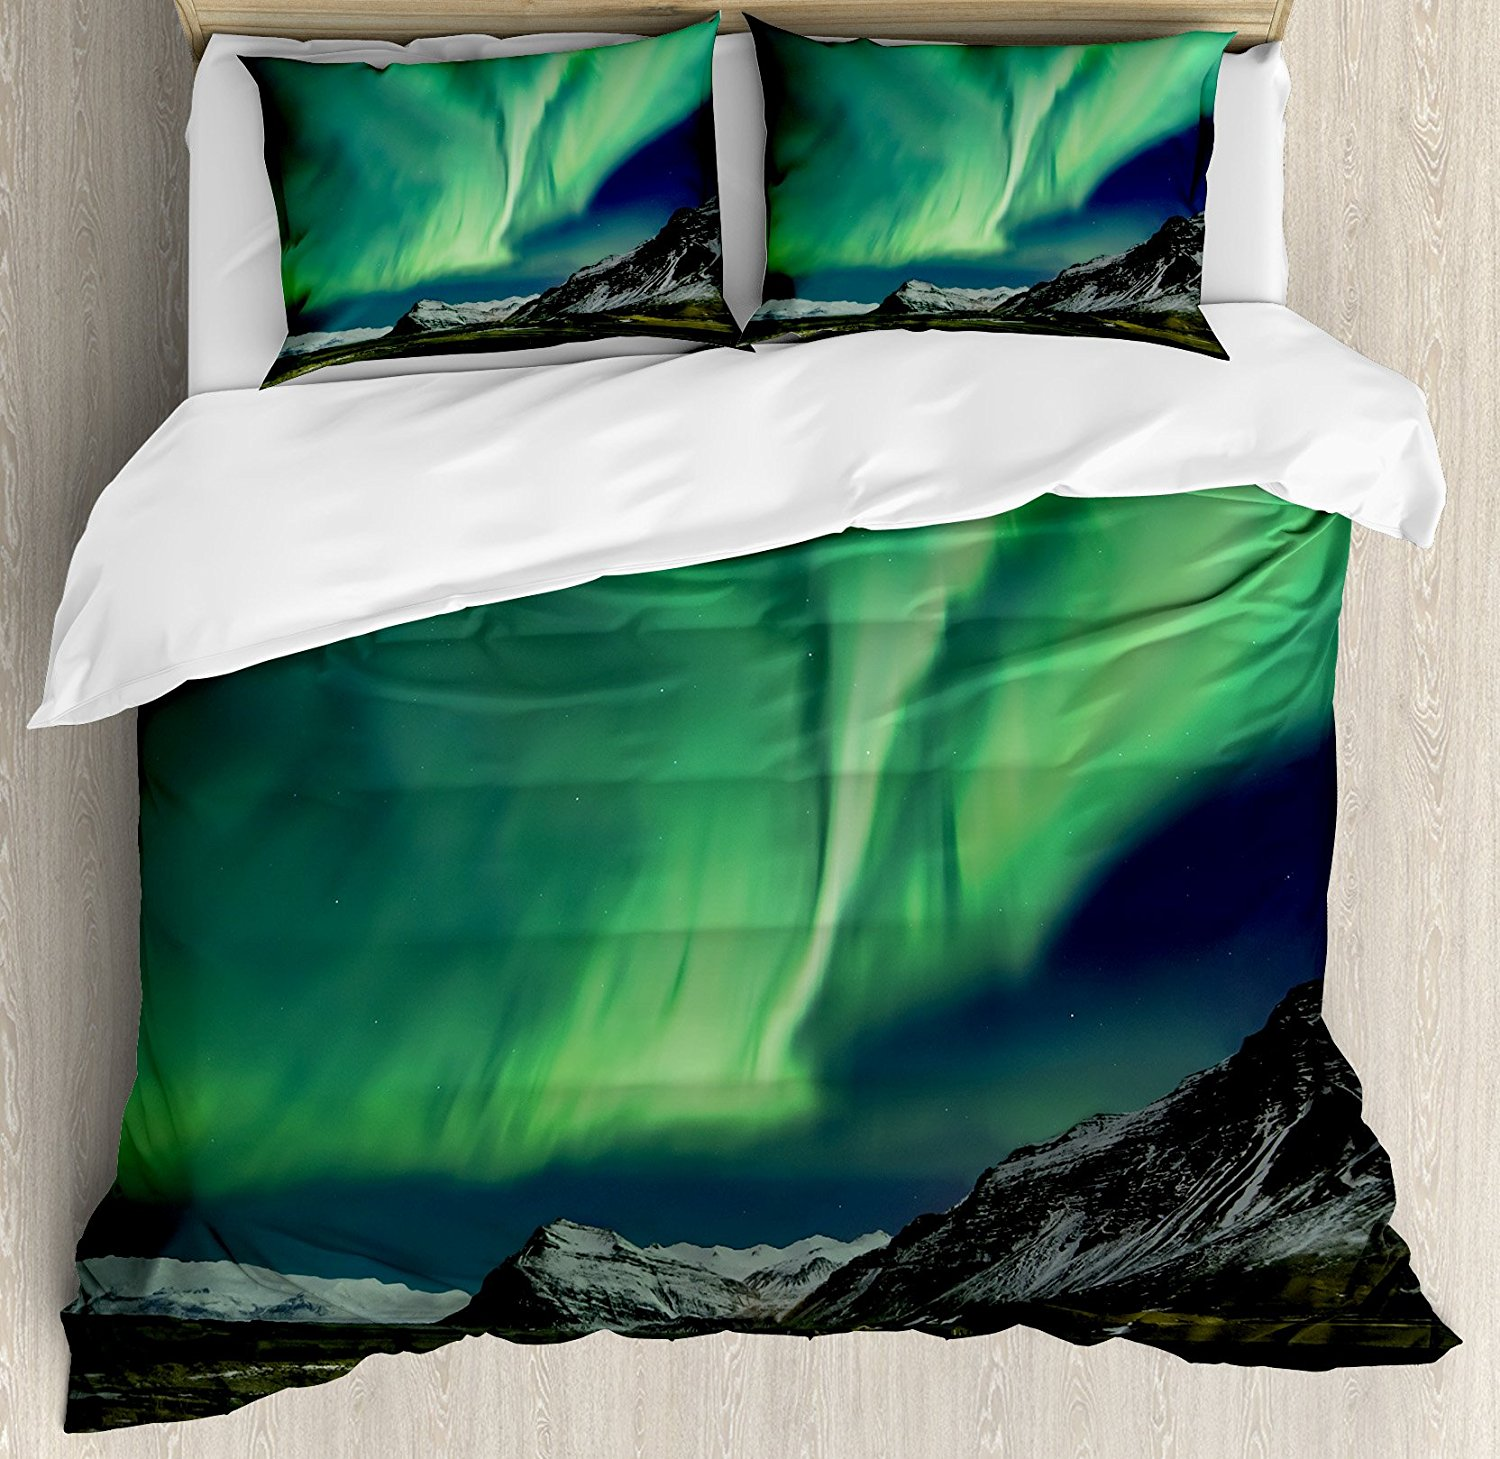 Buy jade green bedding and free shipping on AliExpress